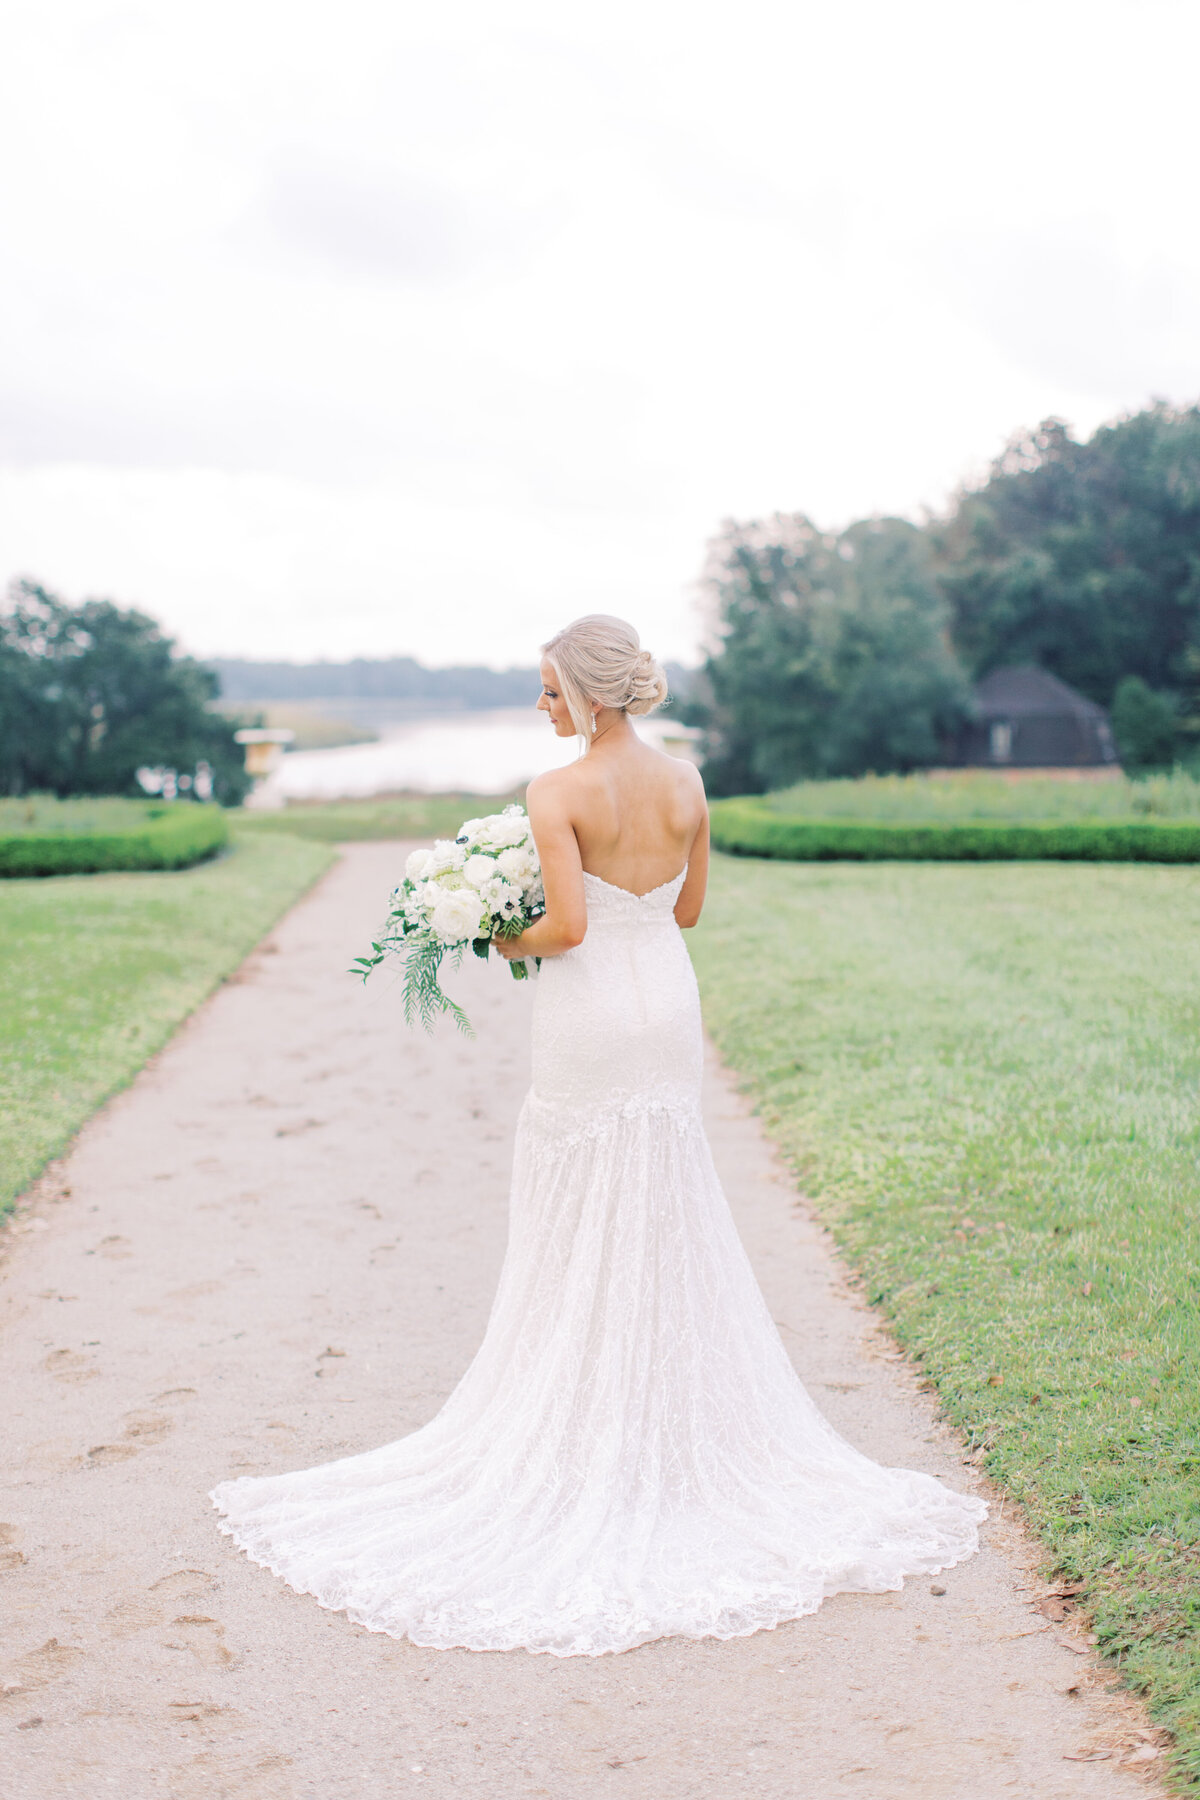 Melton_Wedding__Middleton_Place_Plantation_Charleston_South_Carolina_Jacksonville_Florida_Devon_Donnahoo_Photography__0292